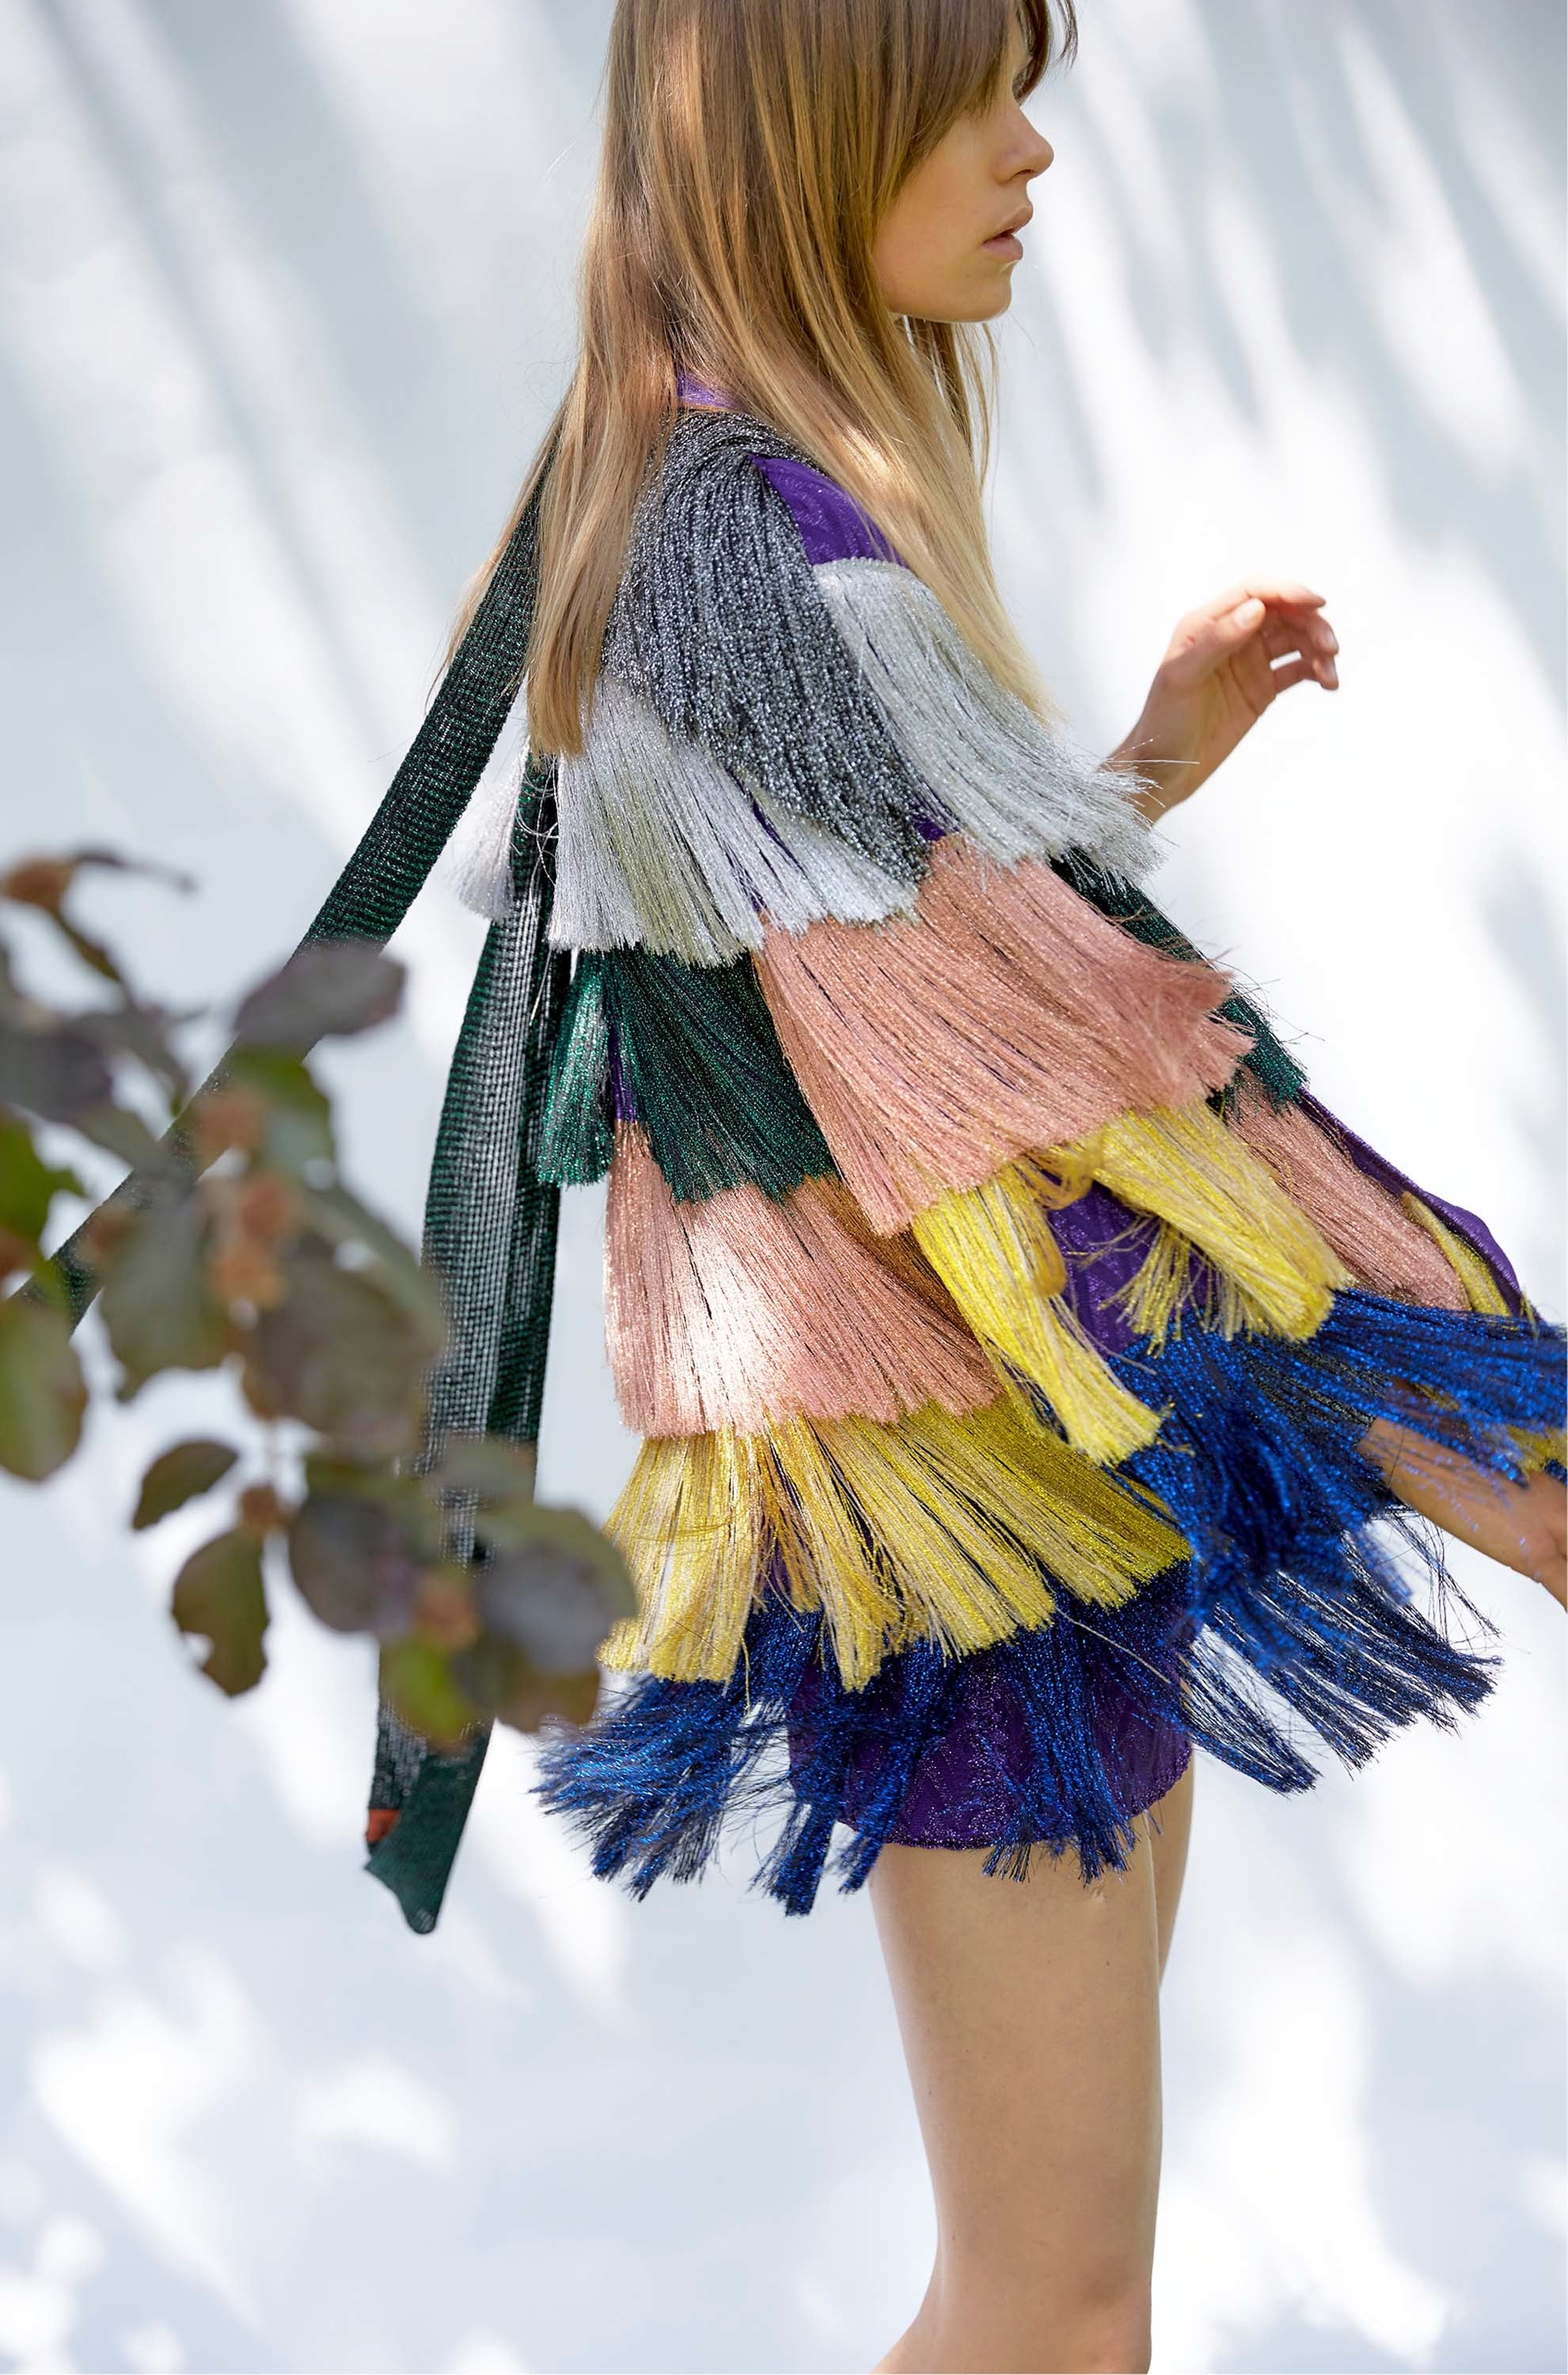 Tassels en Vogue: The Entertaining House Image via Vogue/Missioni